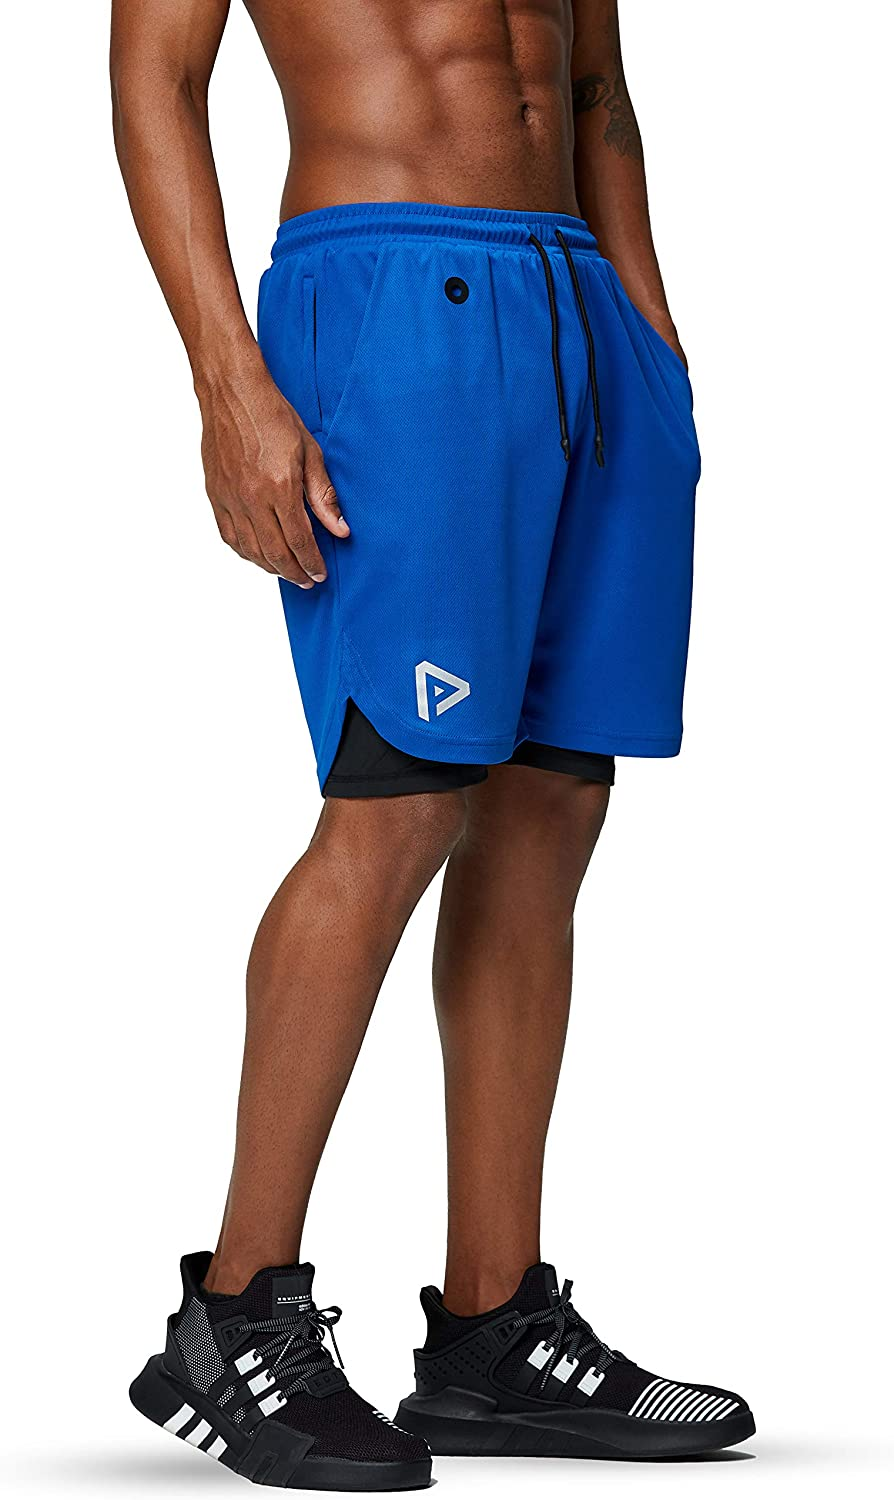 Pinkbomb Men's 2 in 1 Running Shorts Gym Workout Quick Dry Mens Shorts with Phone Pocket: Clothing